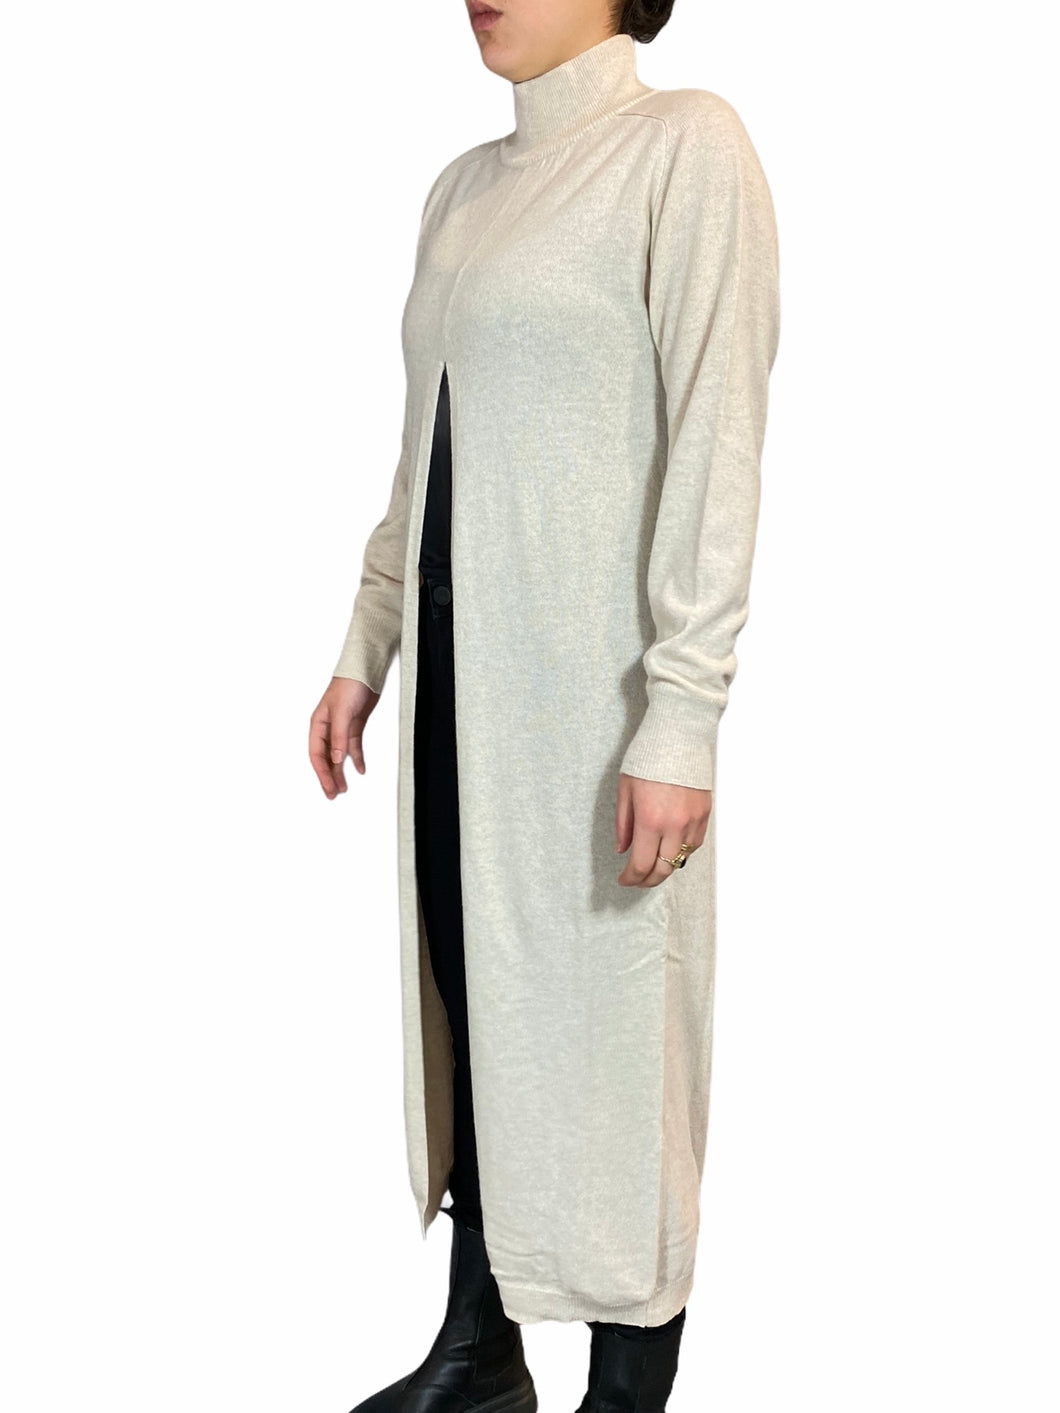 Cream knit sweater/dress Cashmere blend